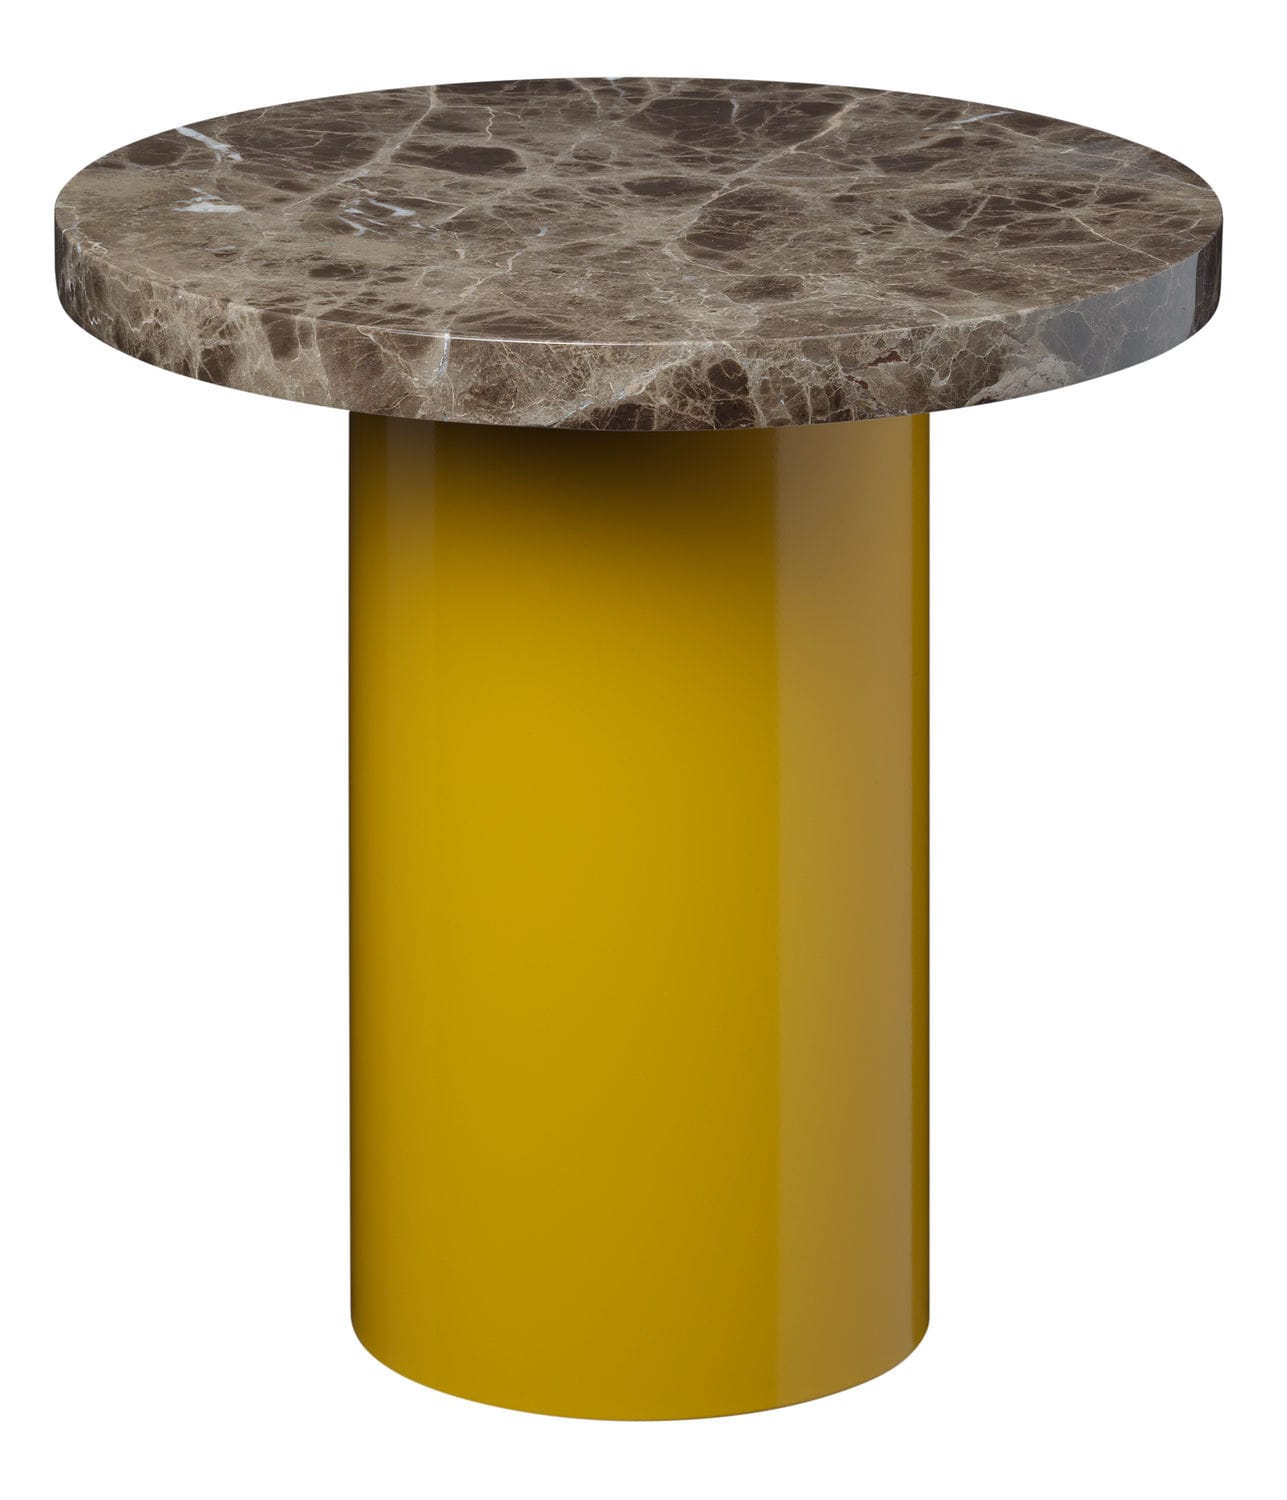 contemporary side table  steel  marble  oak  ct enoki by  -  contemporary side table  steel  marble  oak ct enoki by philippmainzer e